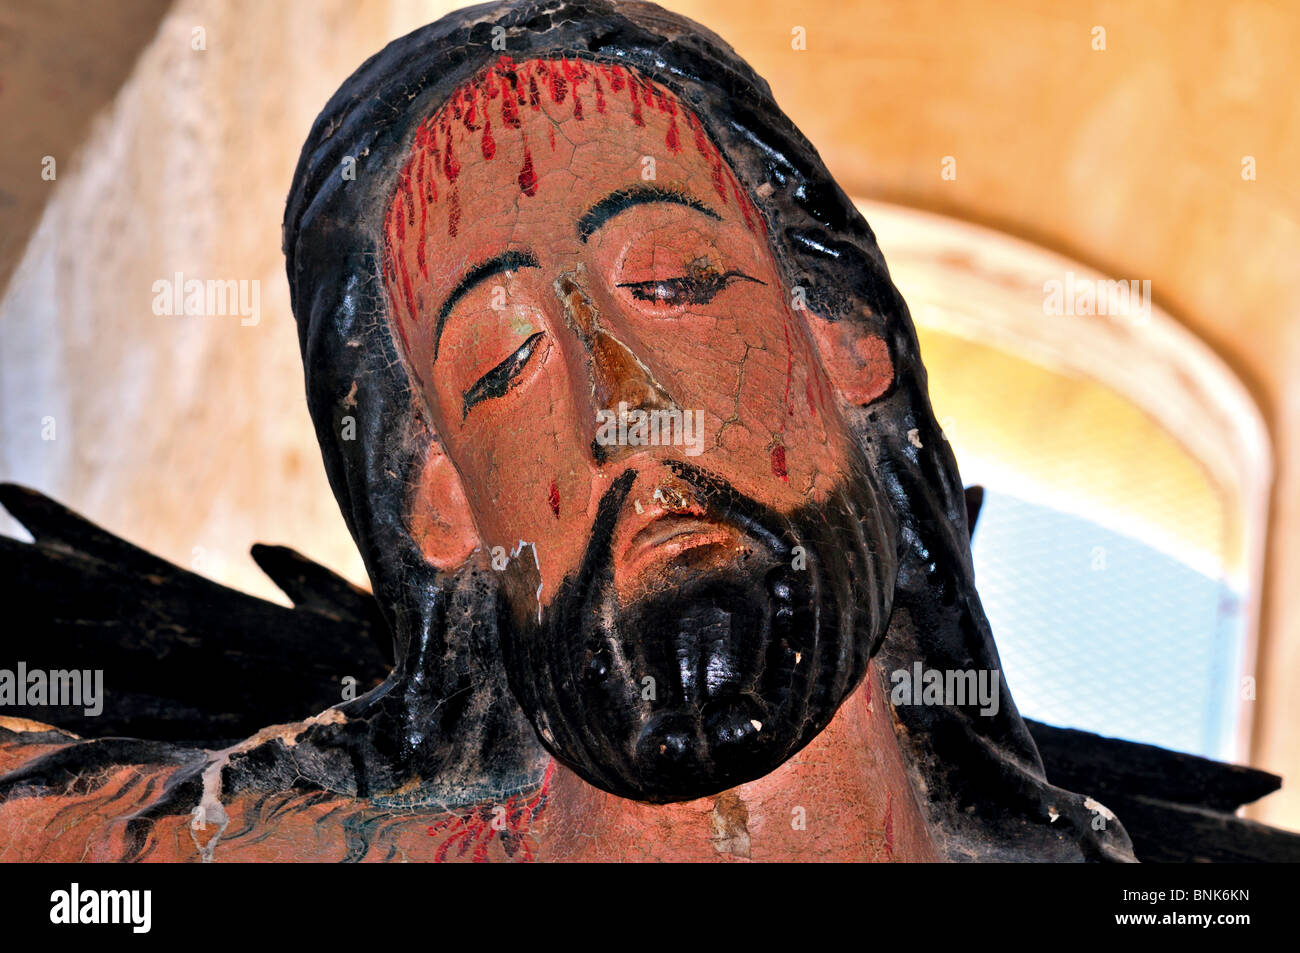 Spain, St. James Way: Detail of an romanesque sculpture of crucified Christ in the church San Martin in Fromista - Stock Image